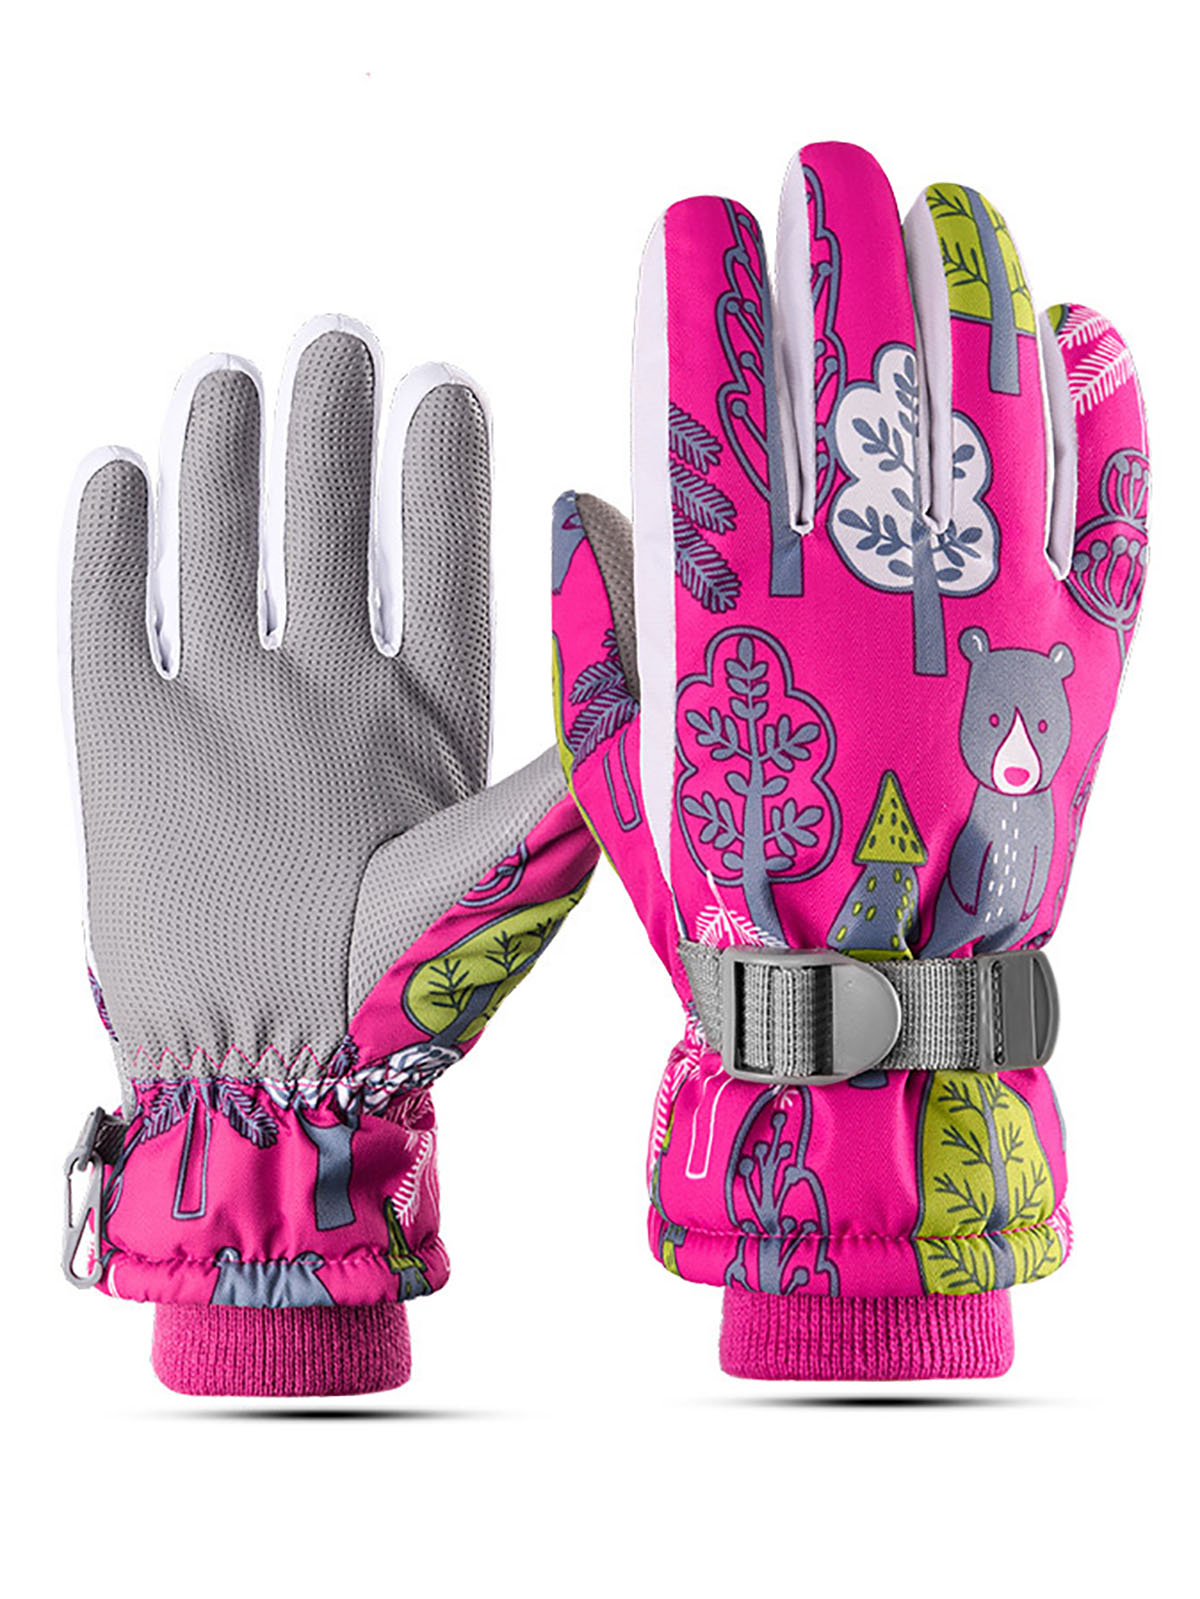 Children's outdoor ski warm and cold gloves